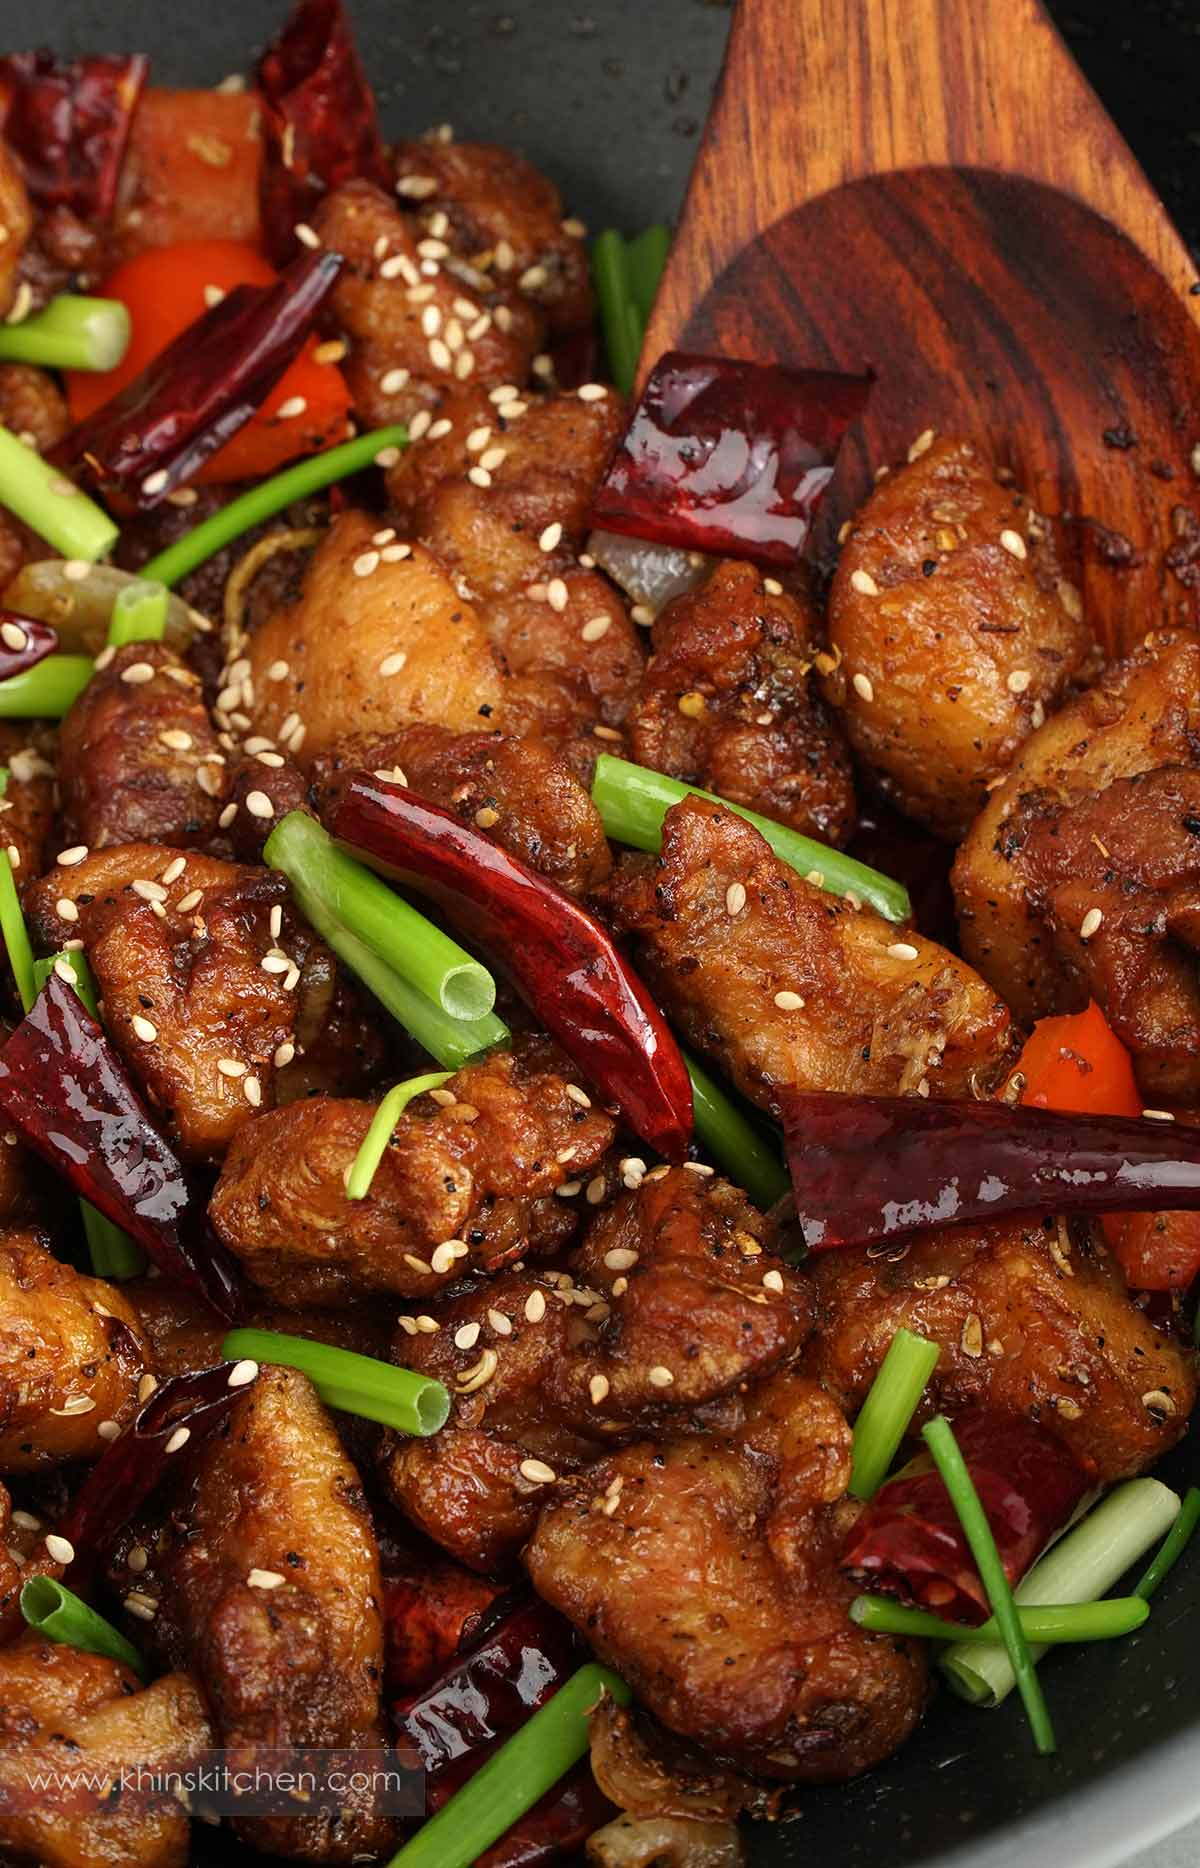 A skillet containing crispy fried chicken, stir fry vegetable and dried red chillies.